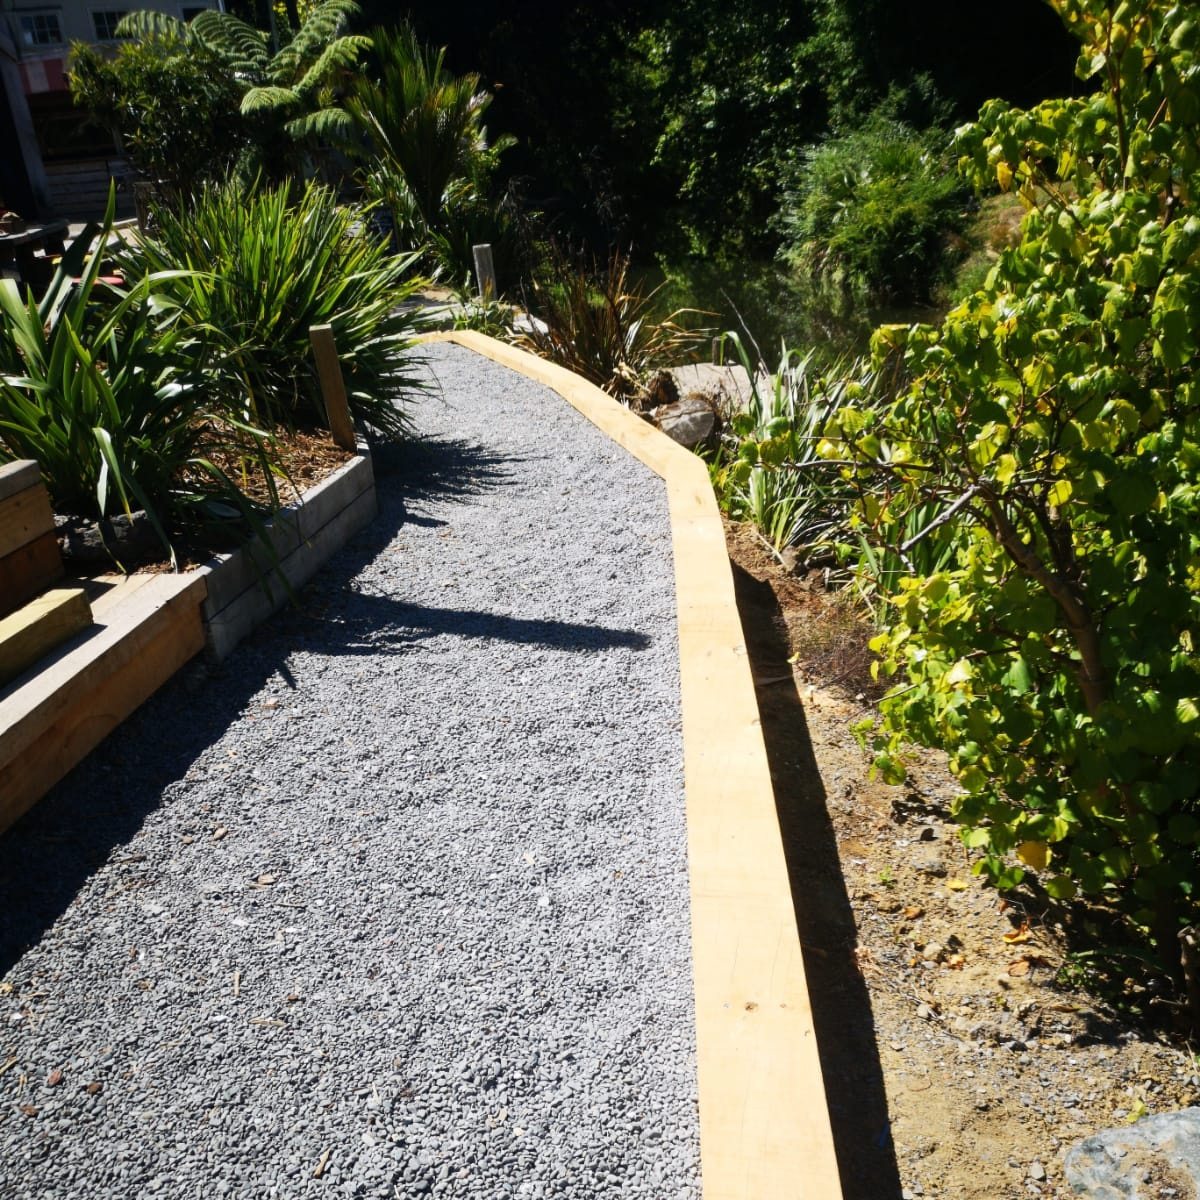 Matakana Markets   You'll often see us at Matakana Village helping out with ongoing maintenance. The footpath needed to be repaired and a new 15m retaining wall was constructed - both easy tasks for The Little Digger team.